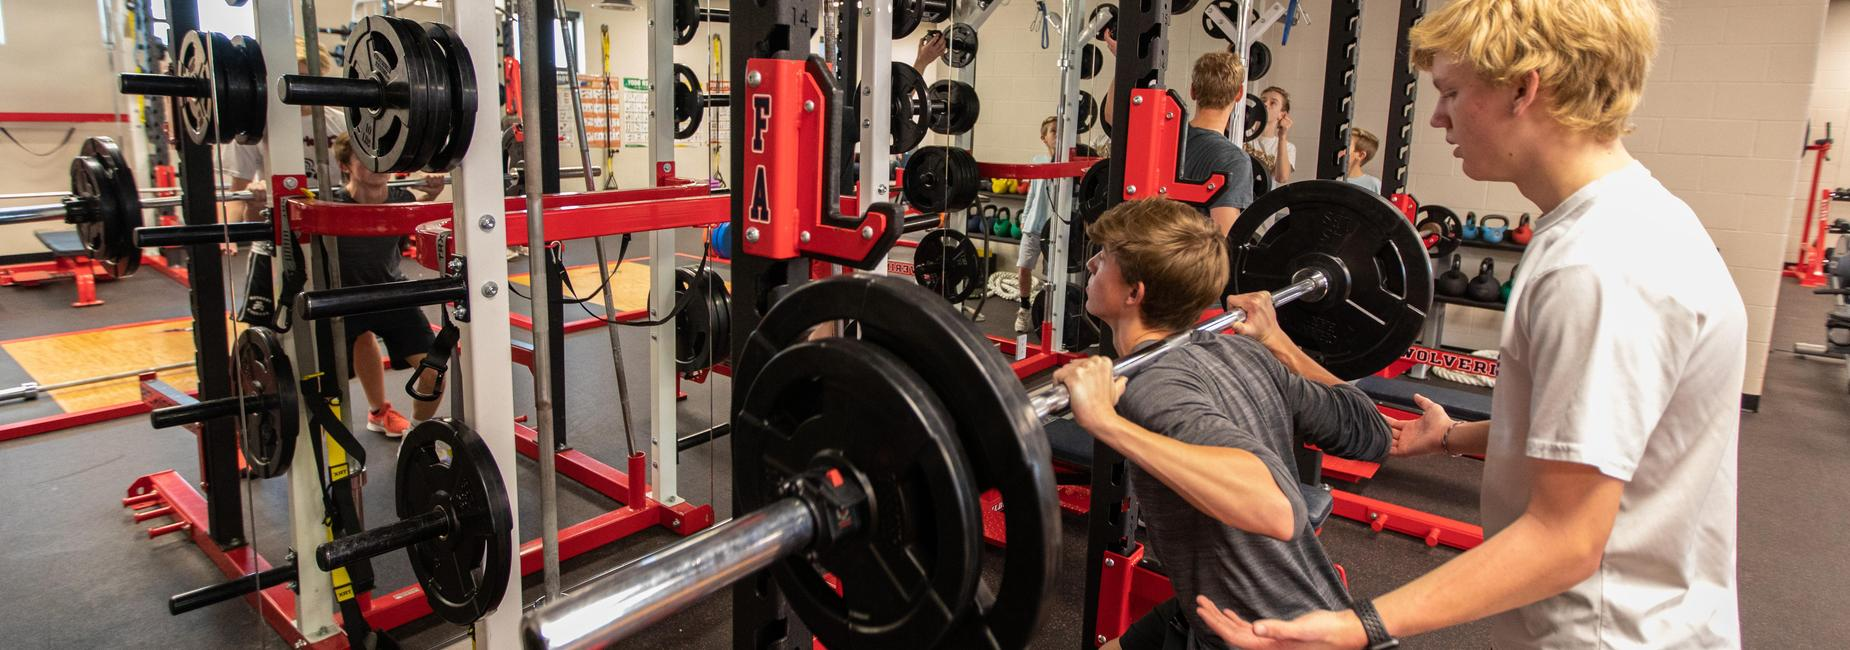 Secondary Weight Room